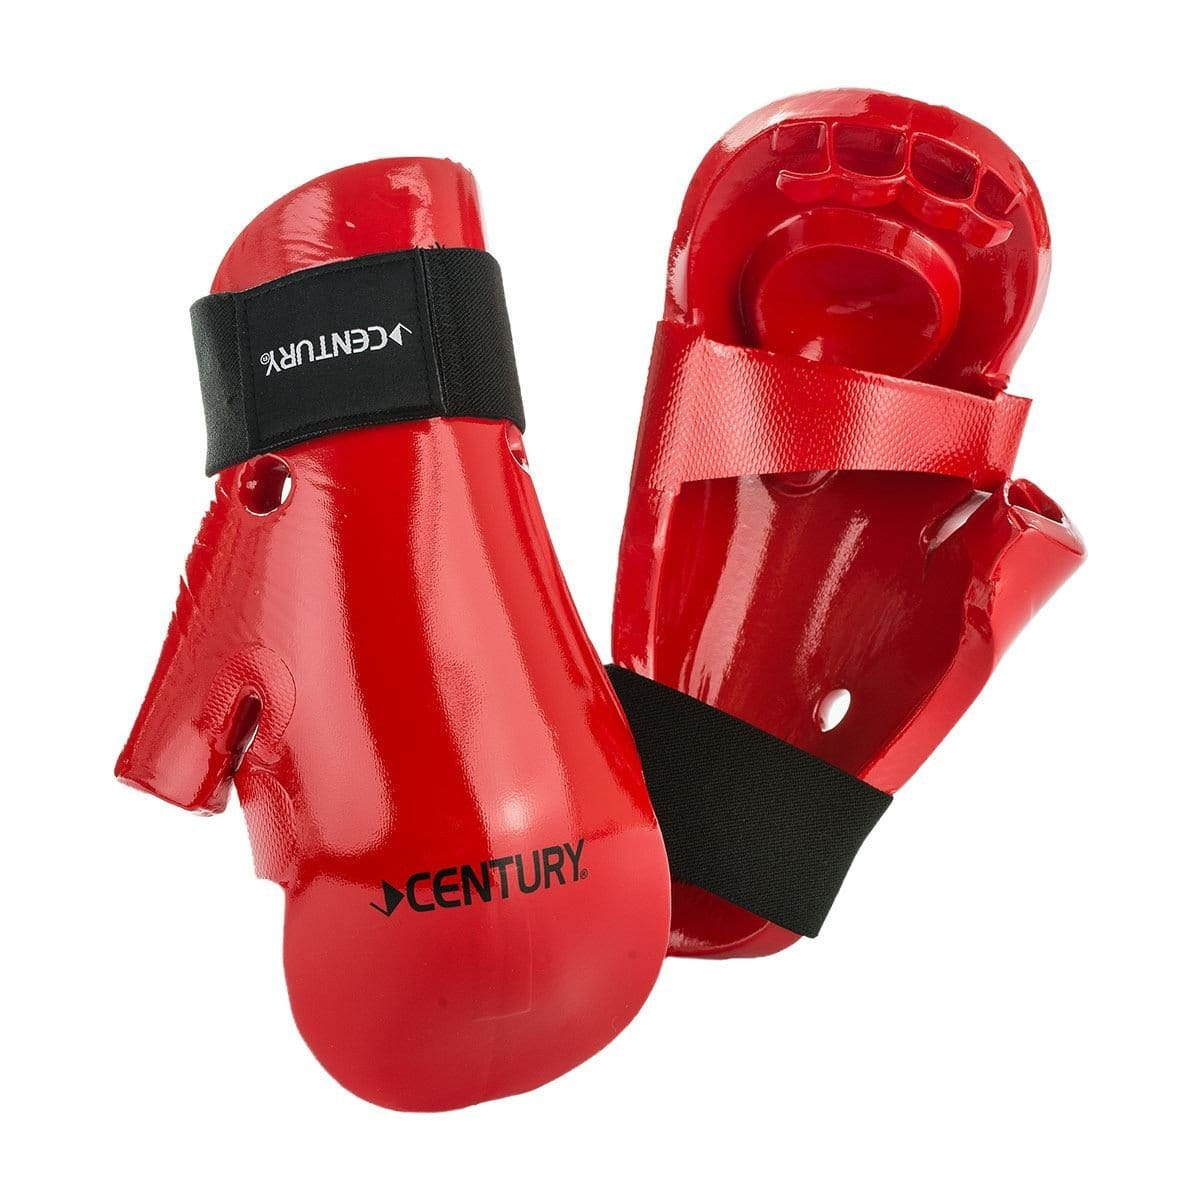 Century Sparring Gloves   Any Size Karate Taekwondo Martial Arts c1153 - BlackBeltShop